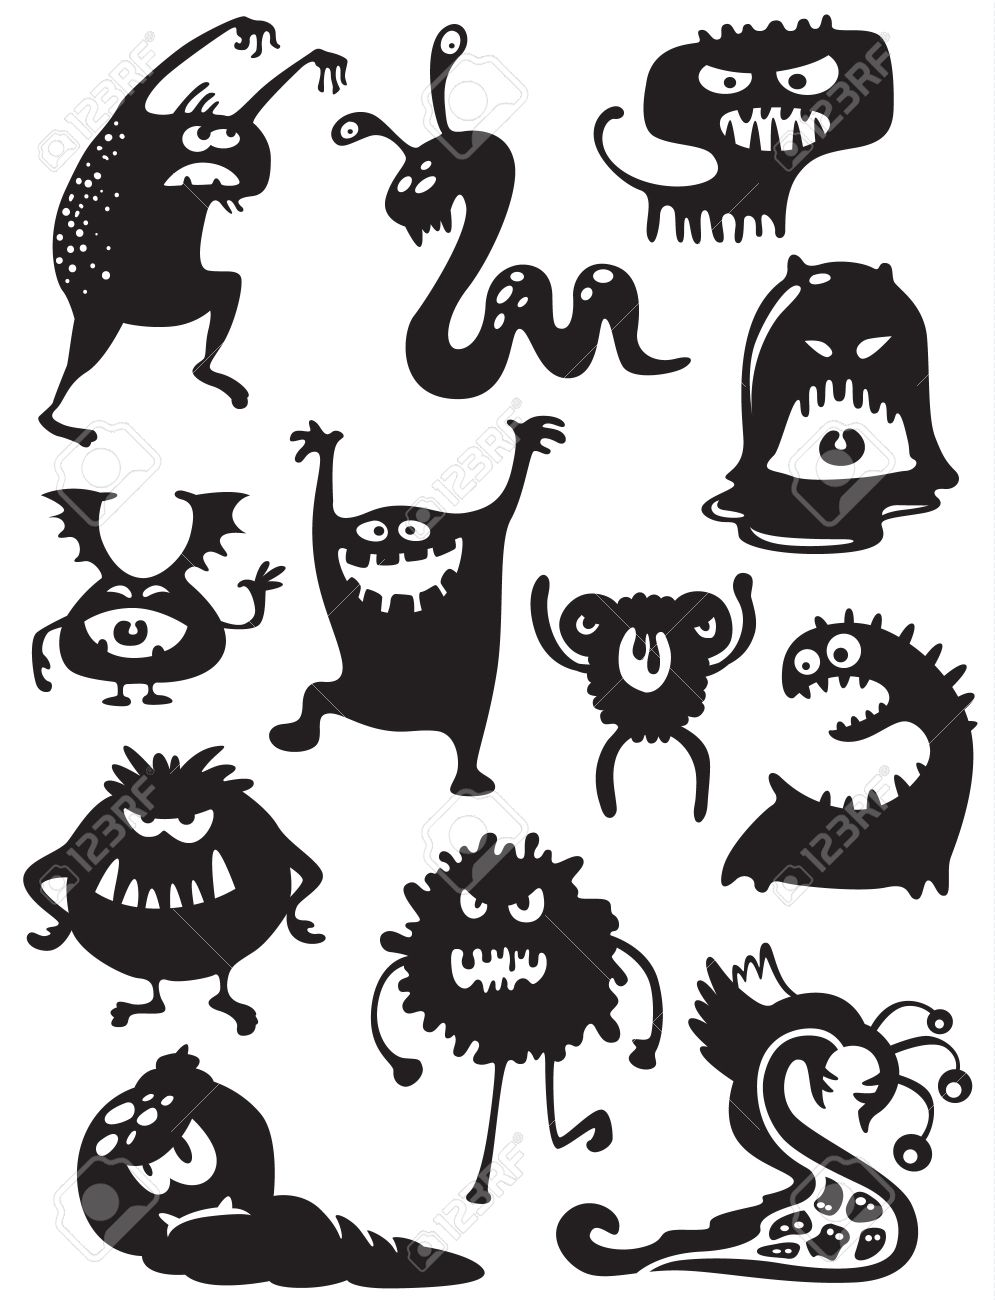 Cute Doodle Monsters Silhouettes of Cute Doodle